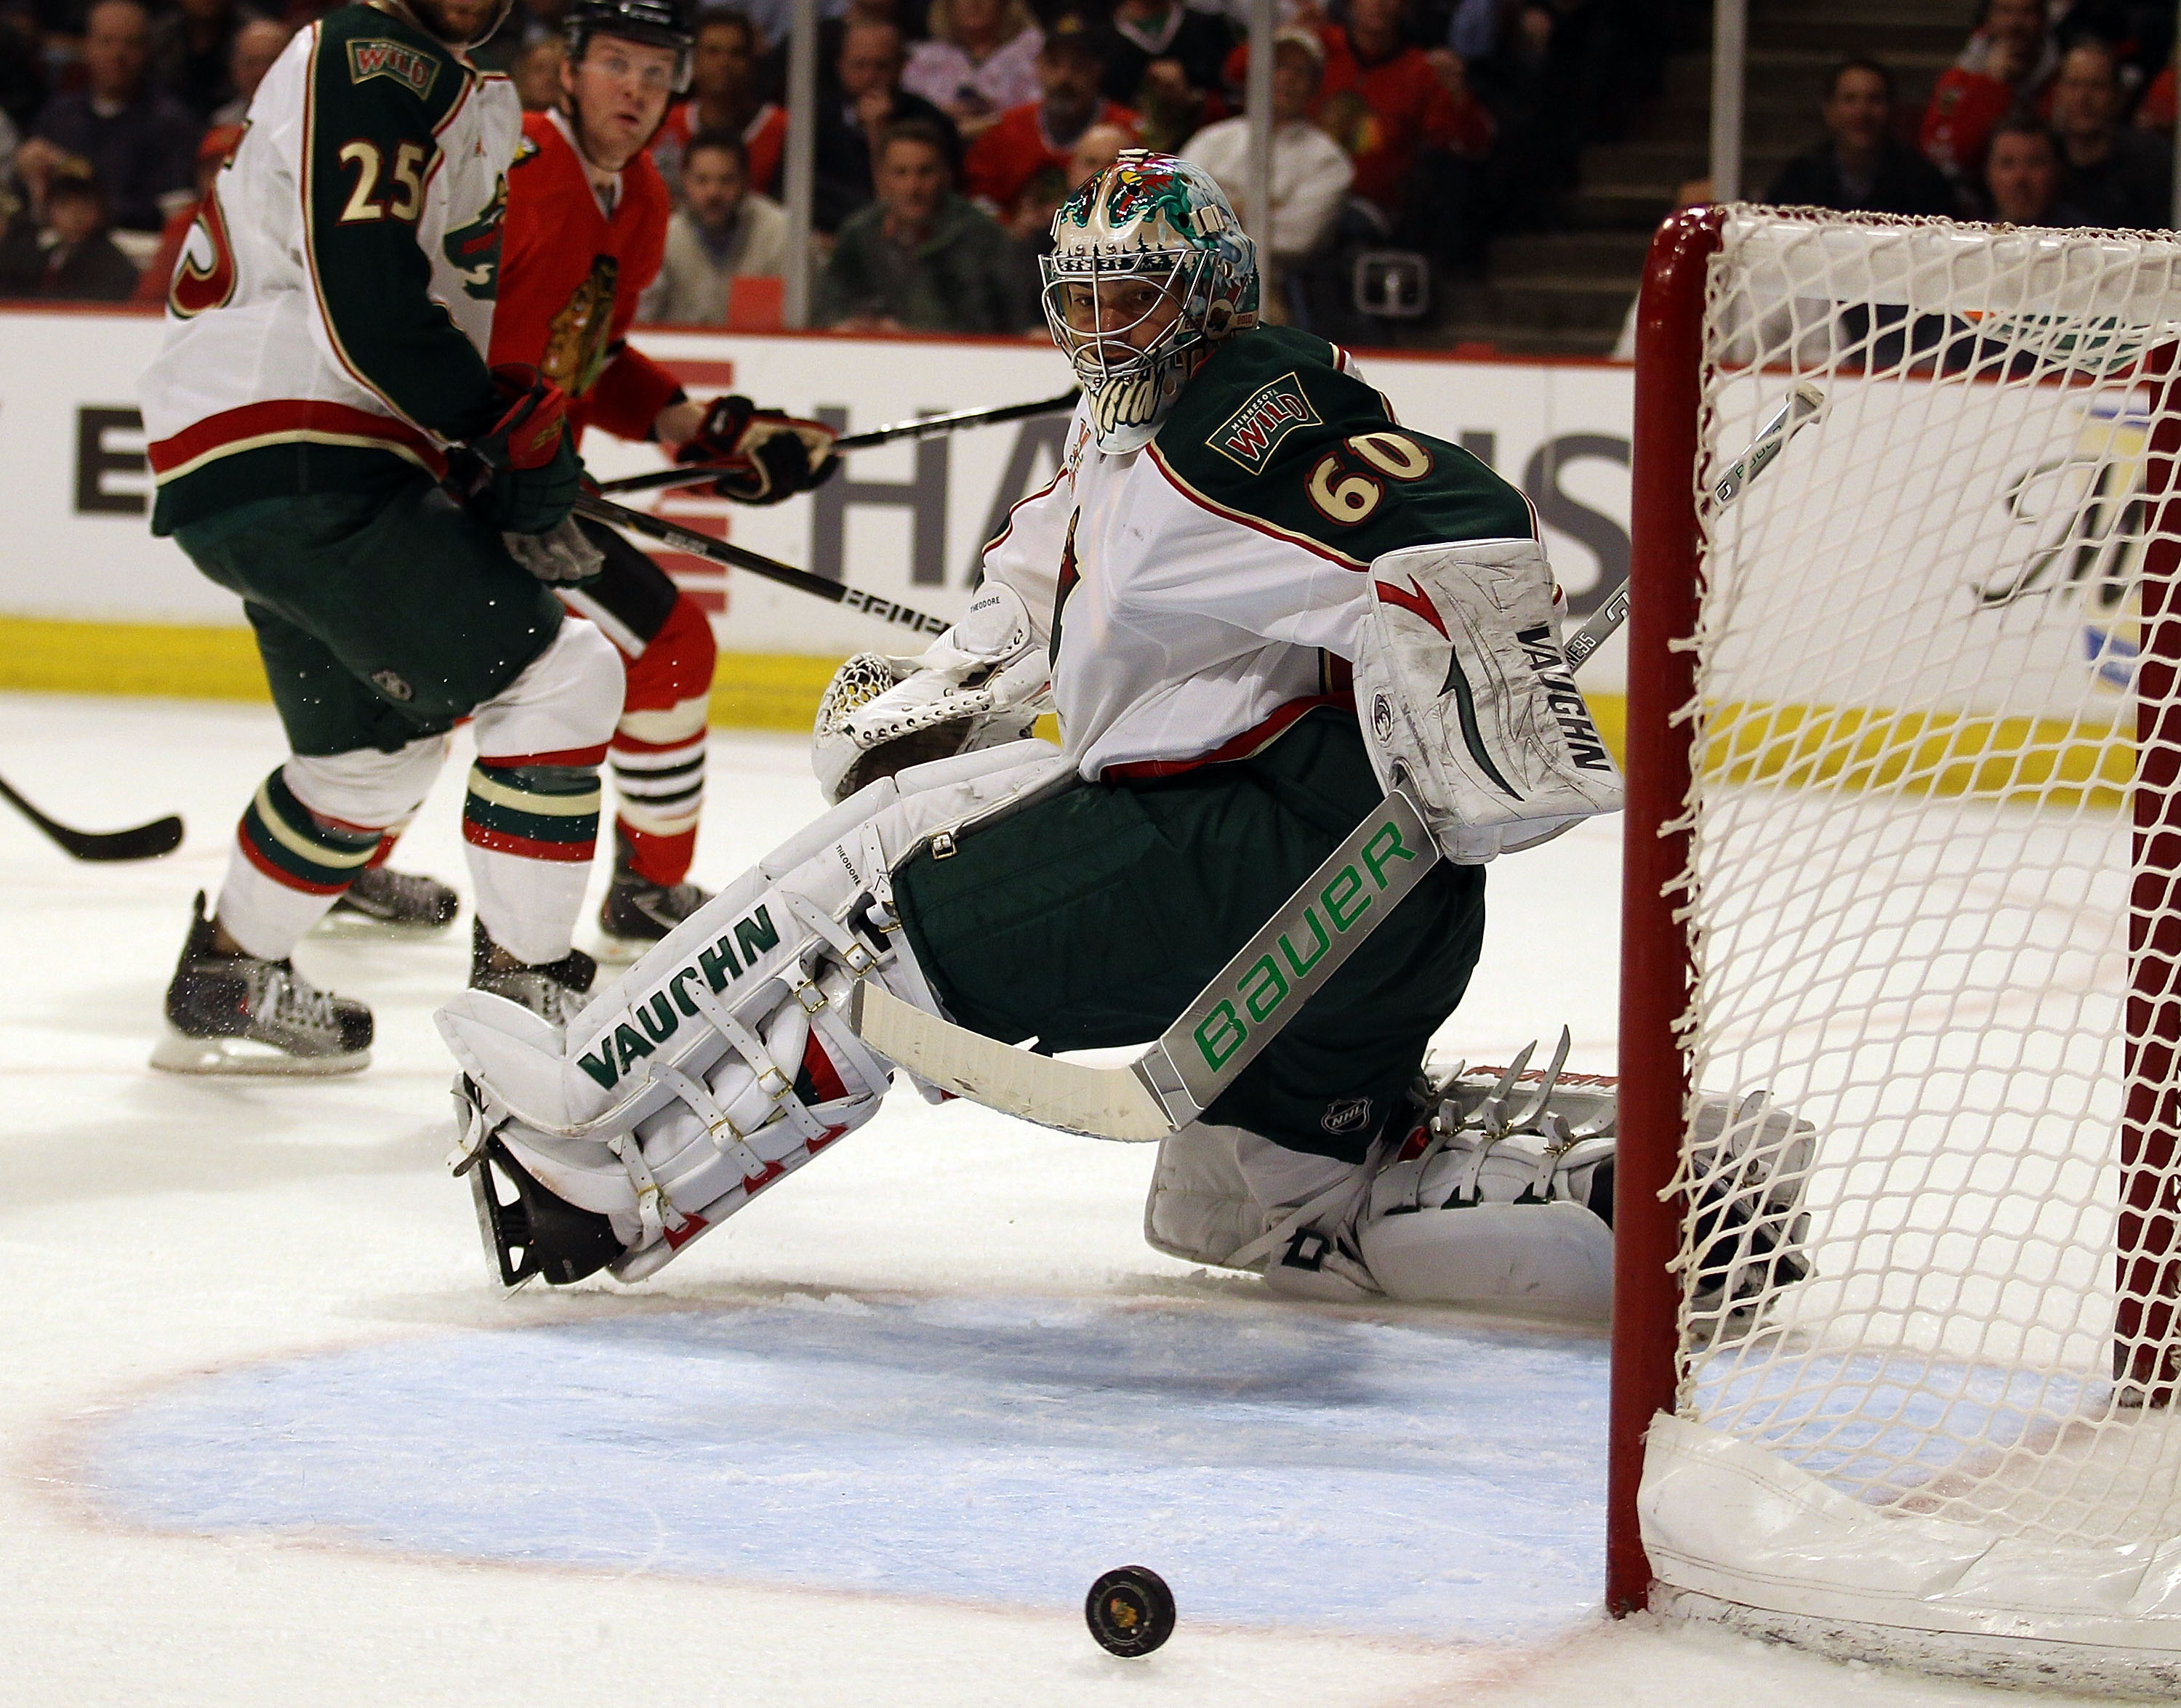 CHICAGO, IL - FEBRUARY 16: Jose Theodore #60 of the Minnesota Wild knocks the puck away for a save against the Chicago Blackhawks at the United Center on February 16, 2011 in Chicago, Illinois. The Blackhawks defeated the Wild 3-1. (Photo by Jonathan Dani